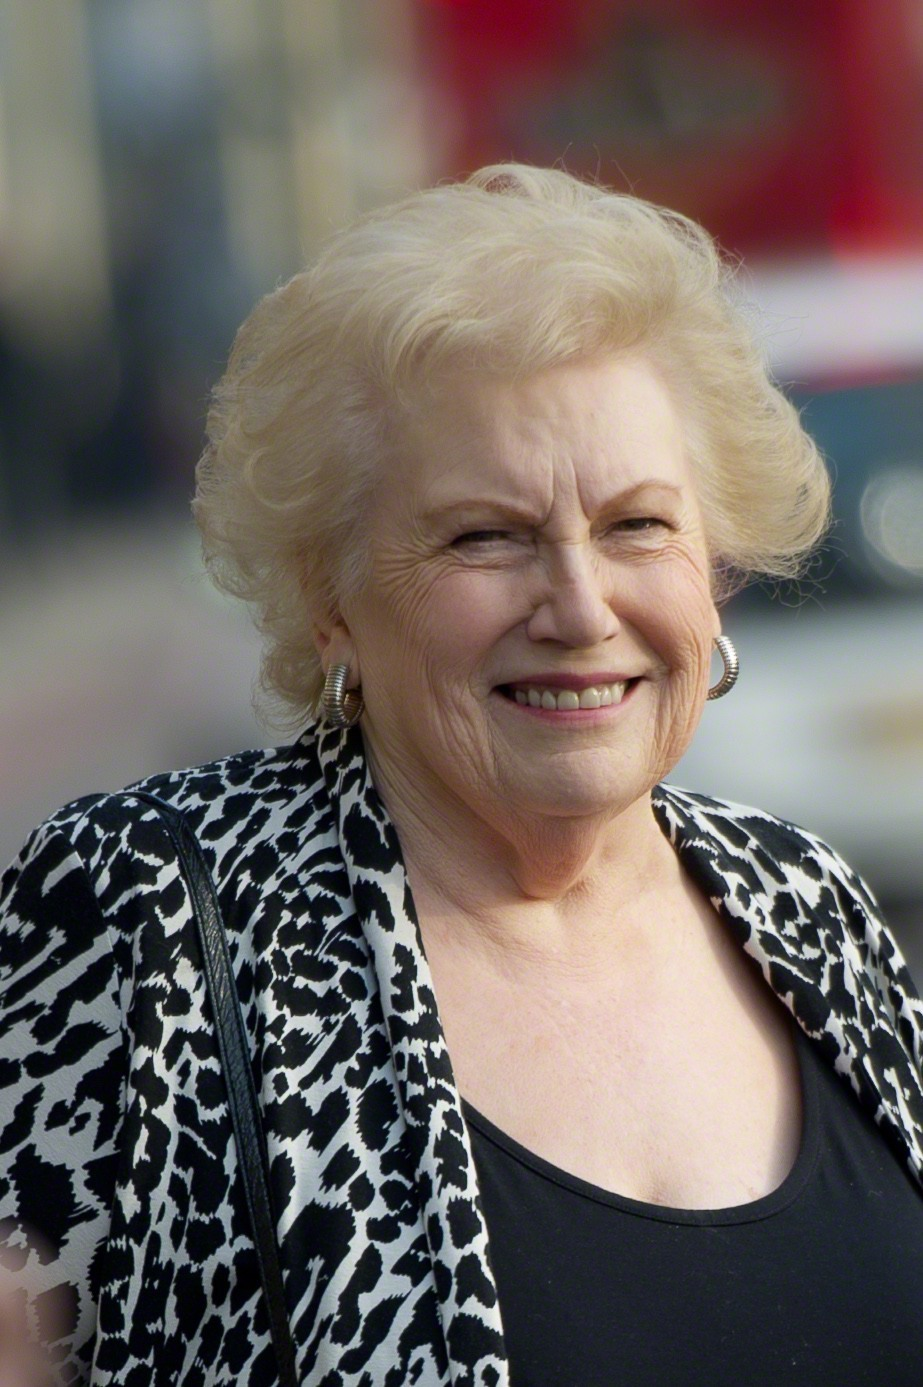 March 11, 2014 Celebrities are seen leaving the TRIC Awards at Grosvenor House in London. Non Exclusive WORLDWIDE RIGHTS Pictures by : FameFlynet UK © 2014 Tel : +44 (0)20 3551 5049 Email : info@fameflynet.uk.com Picture Shows: Denise Robertson